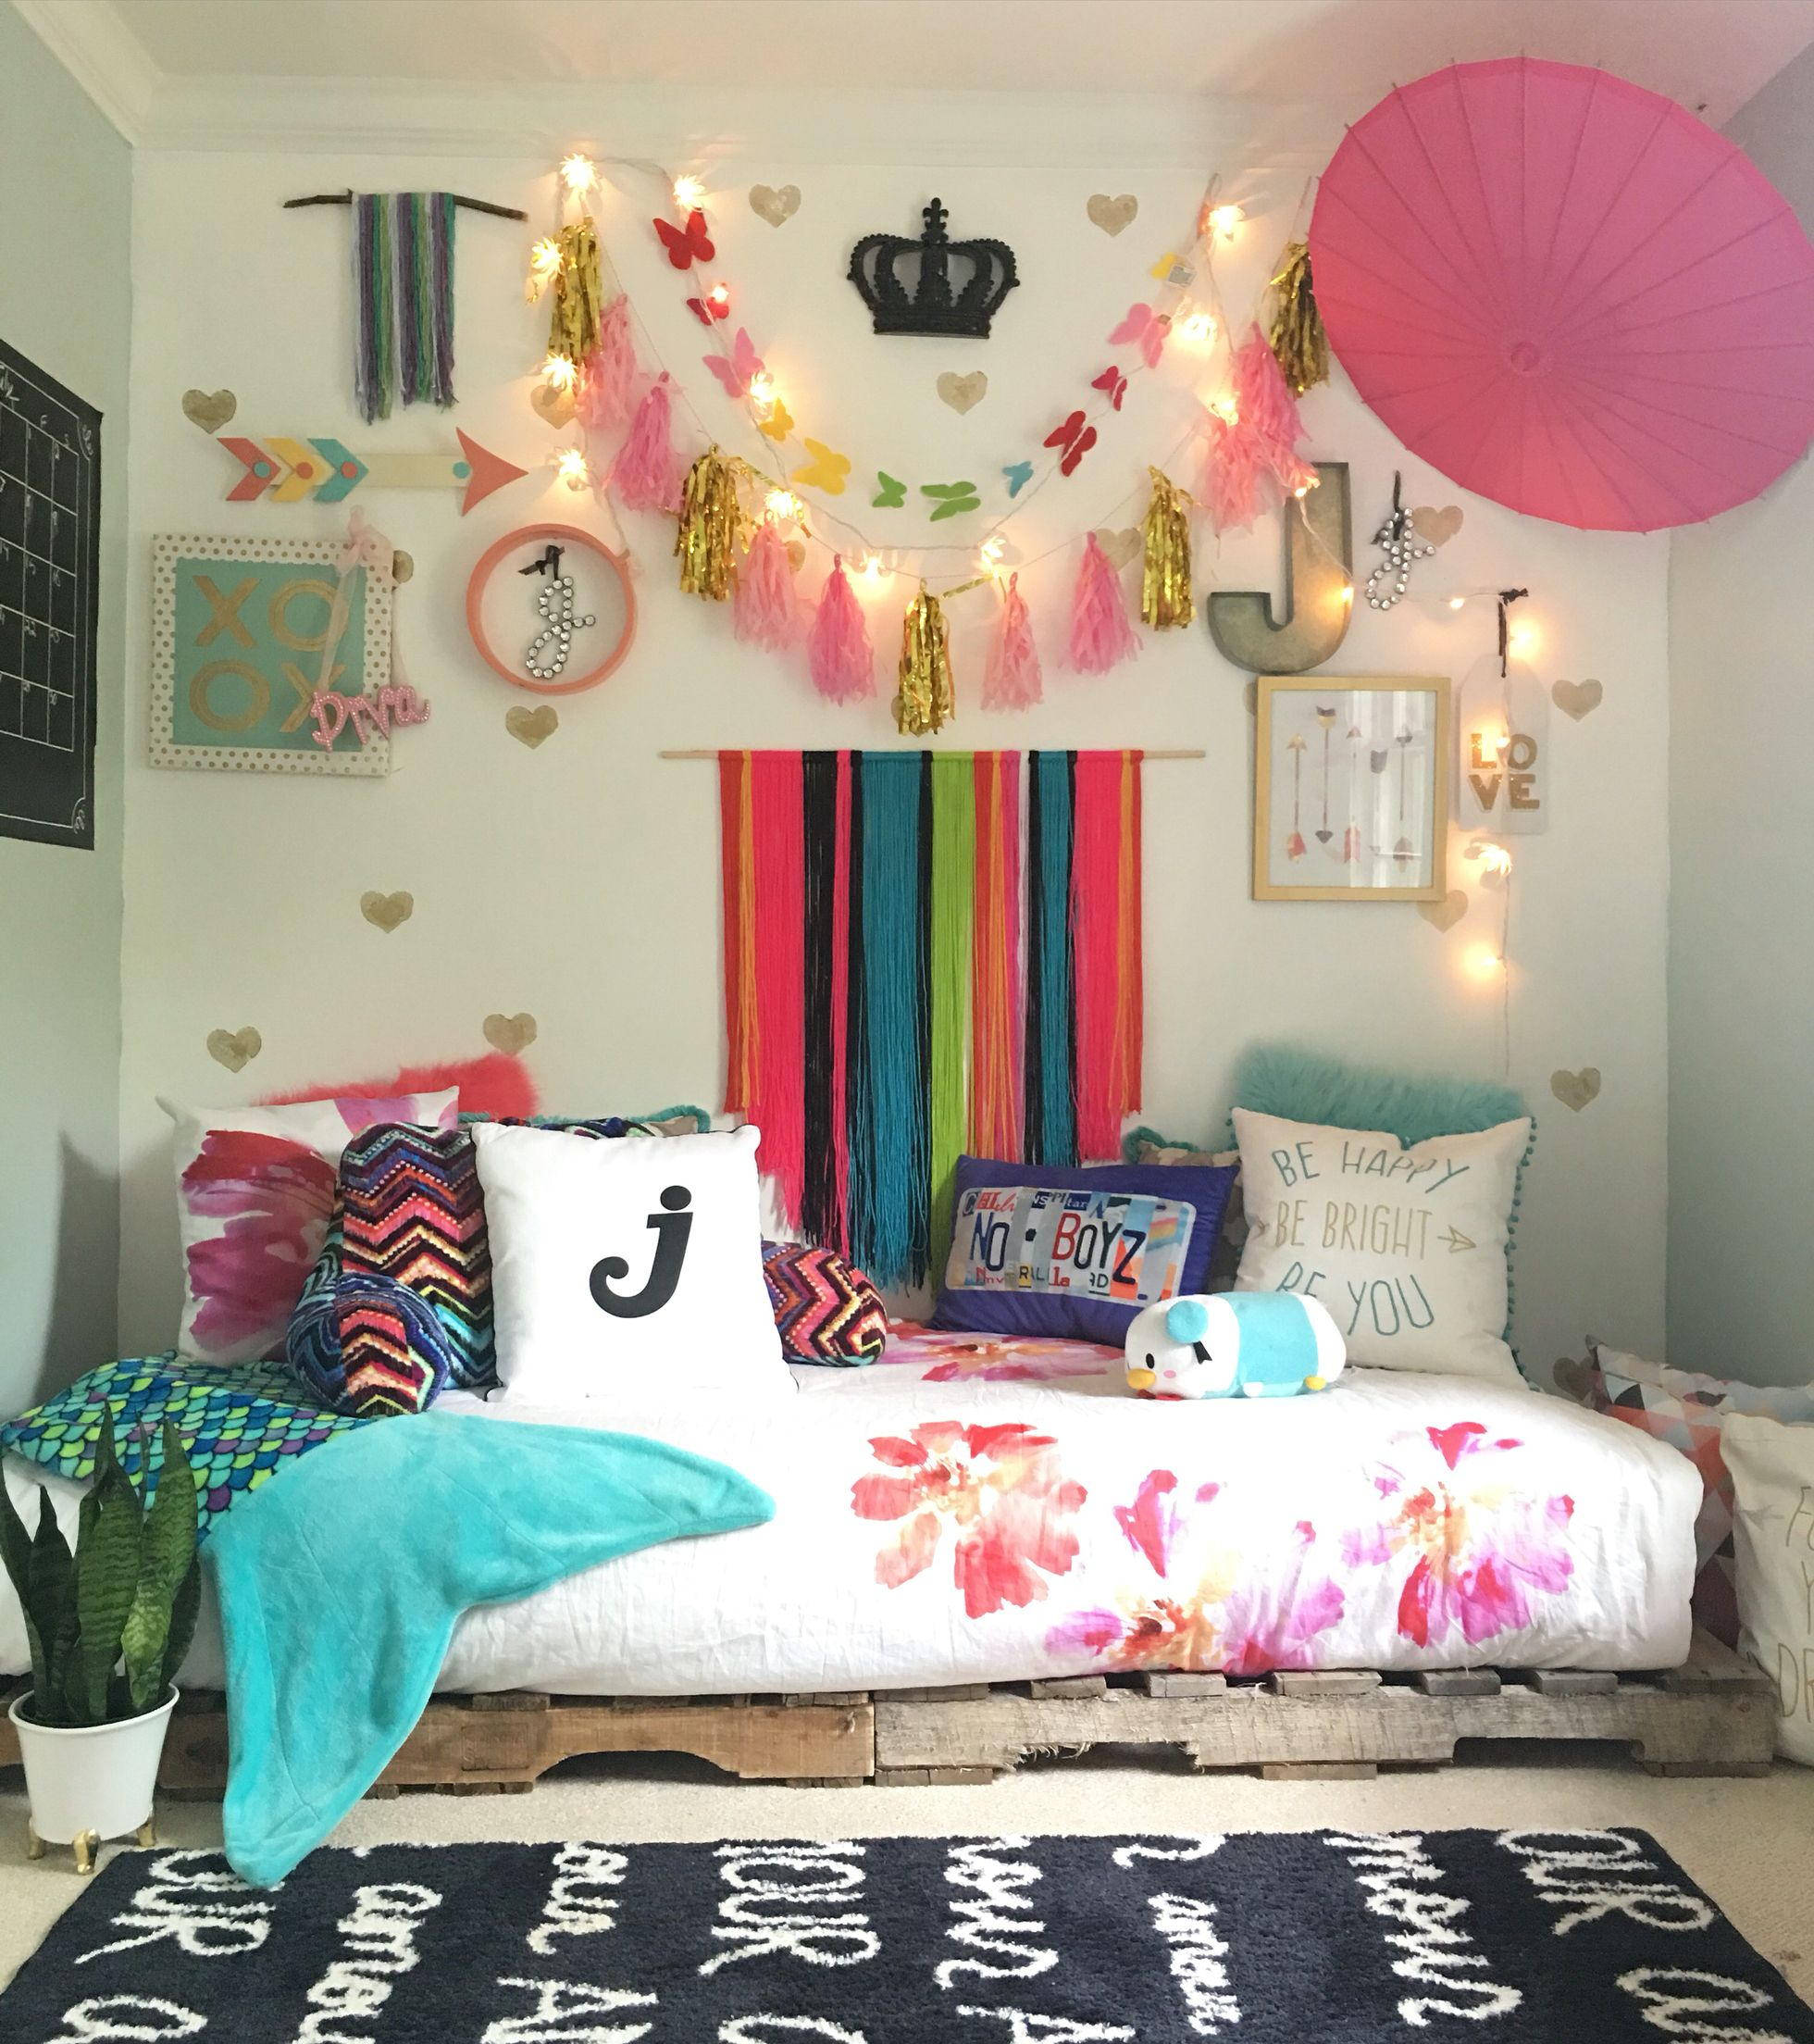 Boho Kids Rooms: 27+ Girls Room Decor Ideas To Change The Feel Of The Room